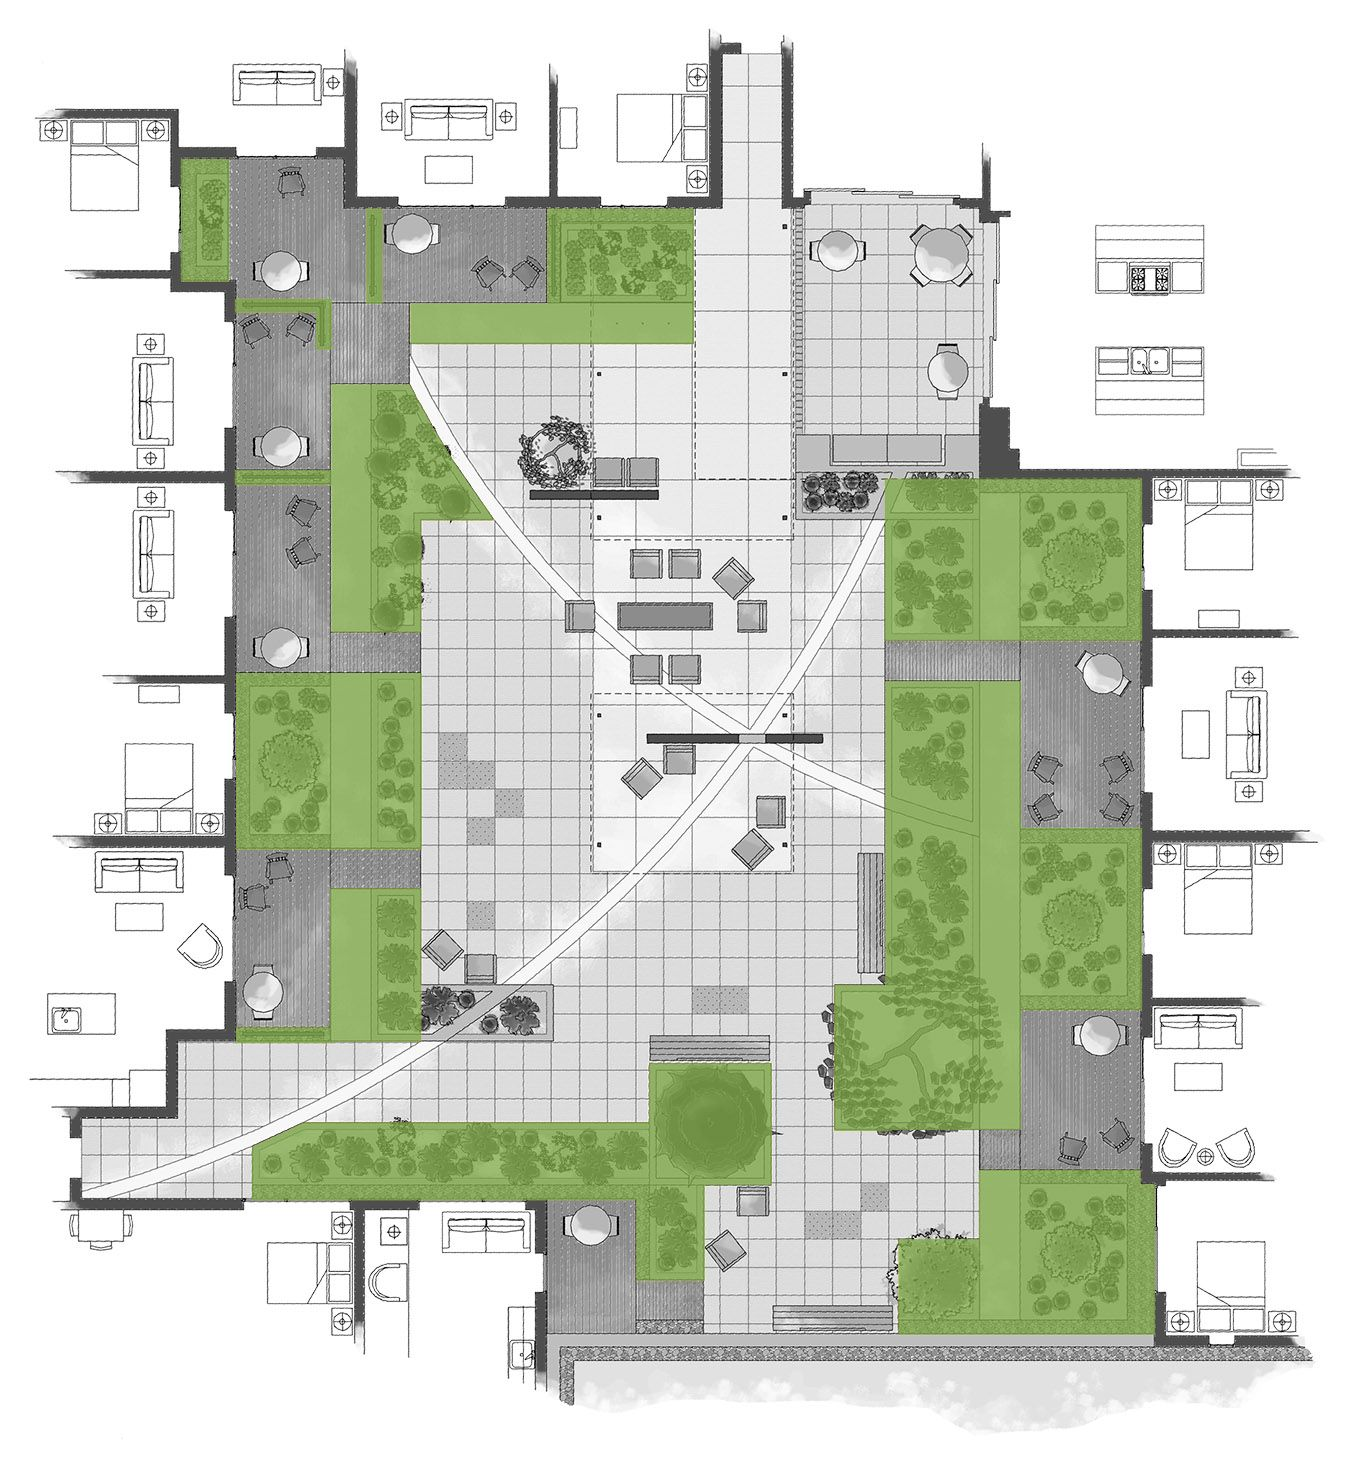 Intensive Residential Green Roof Spatial Diagramming